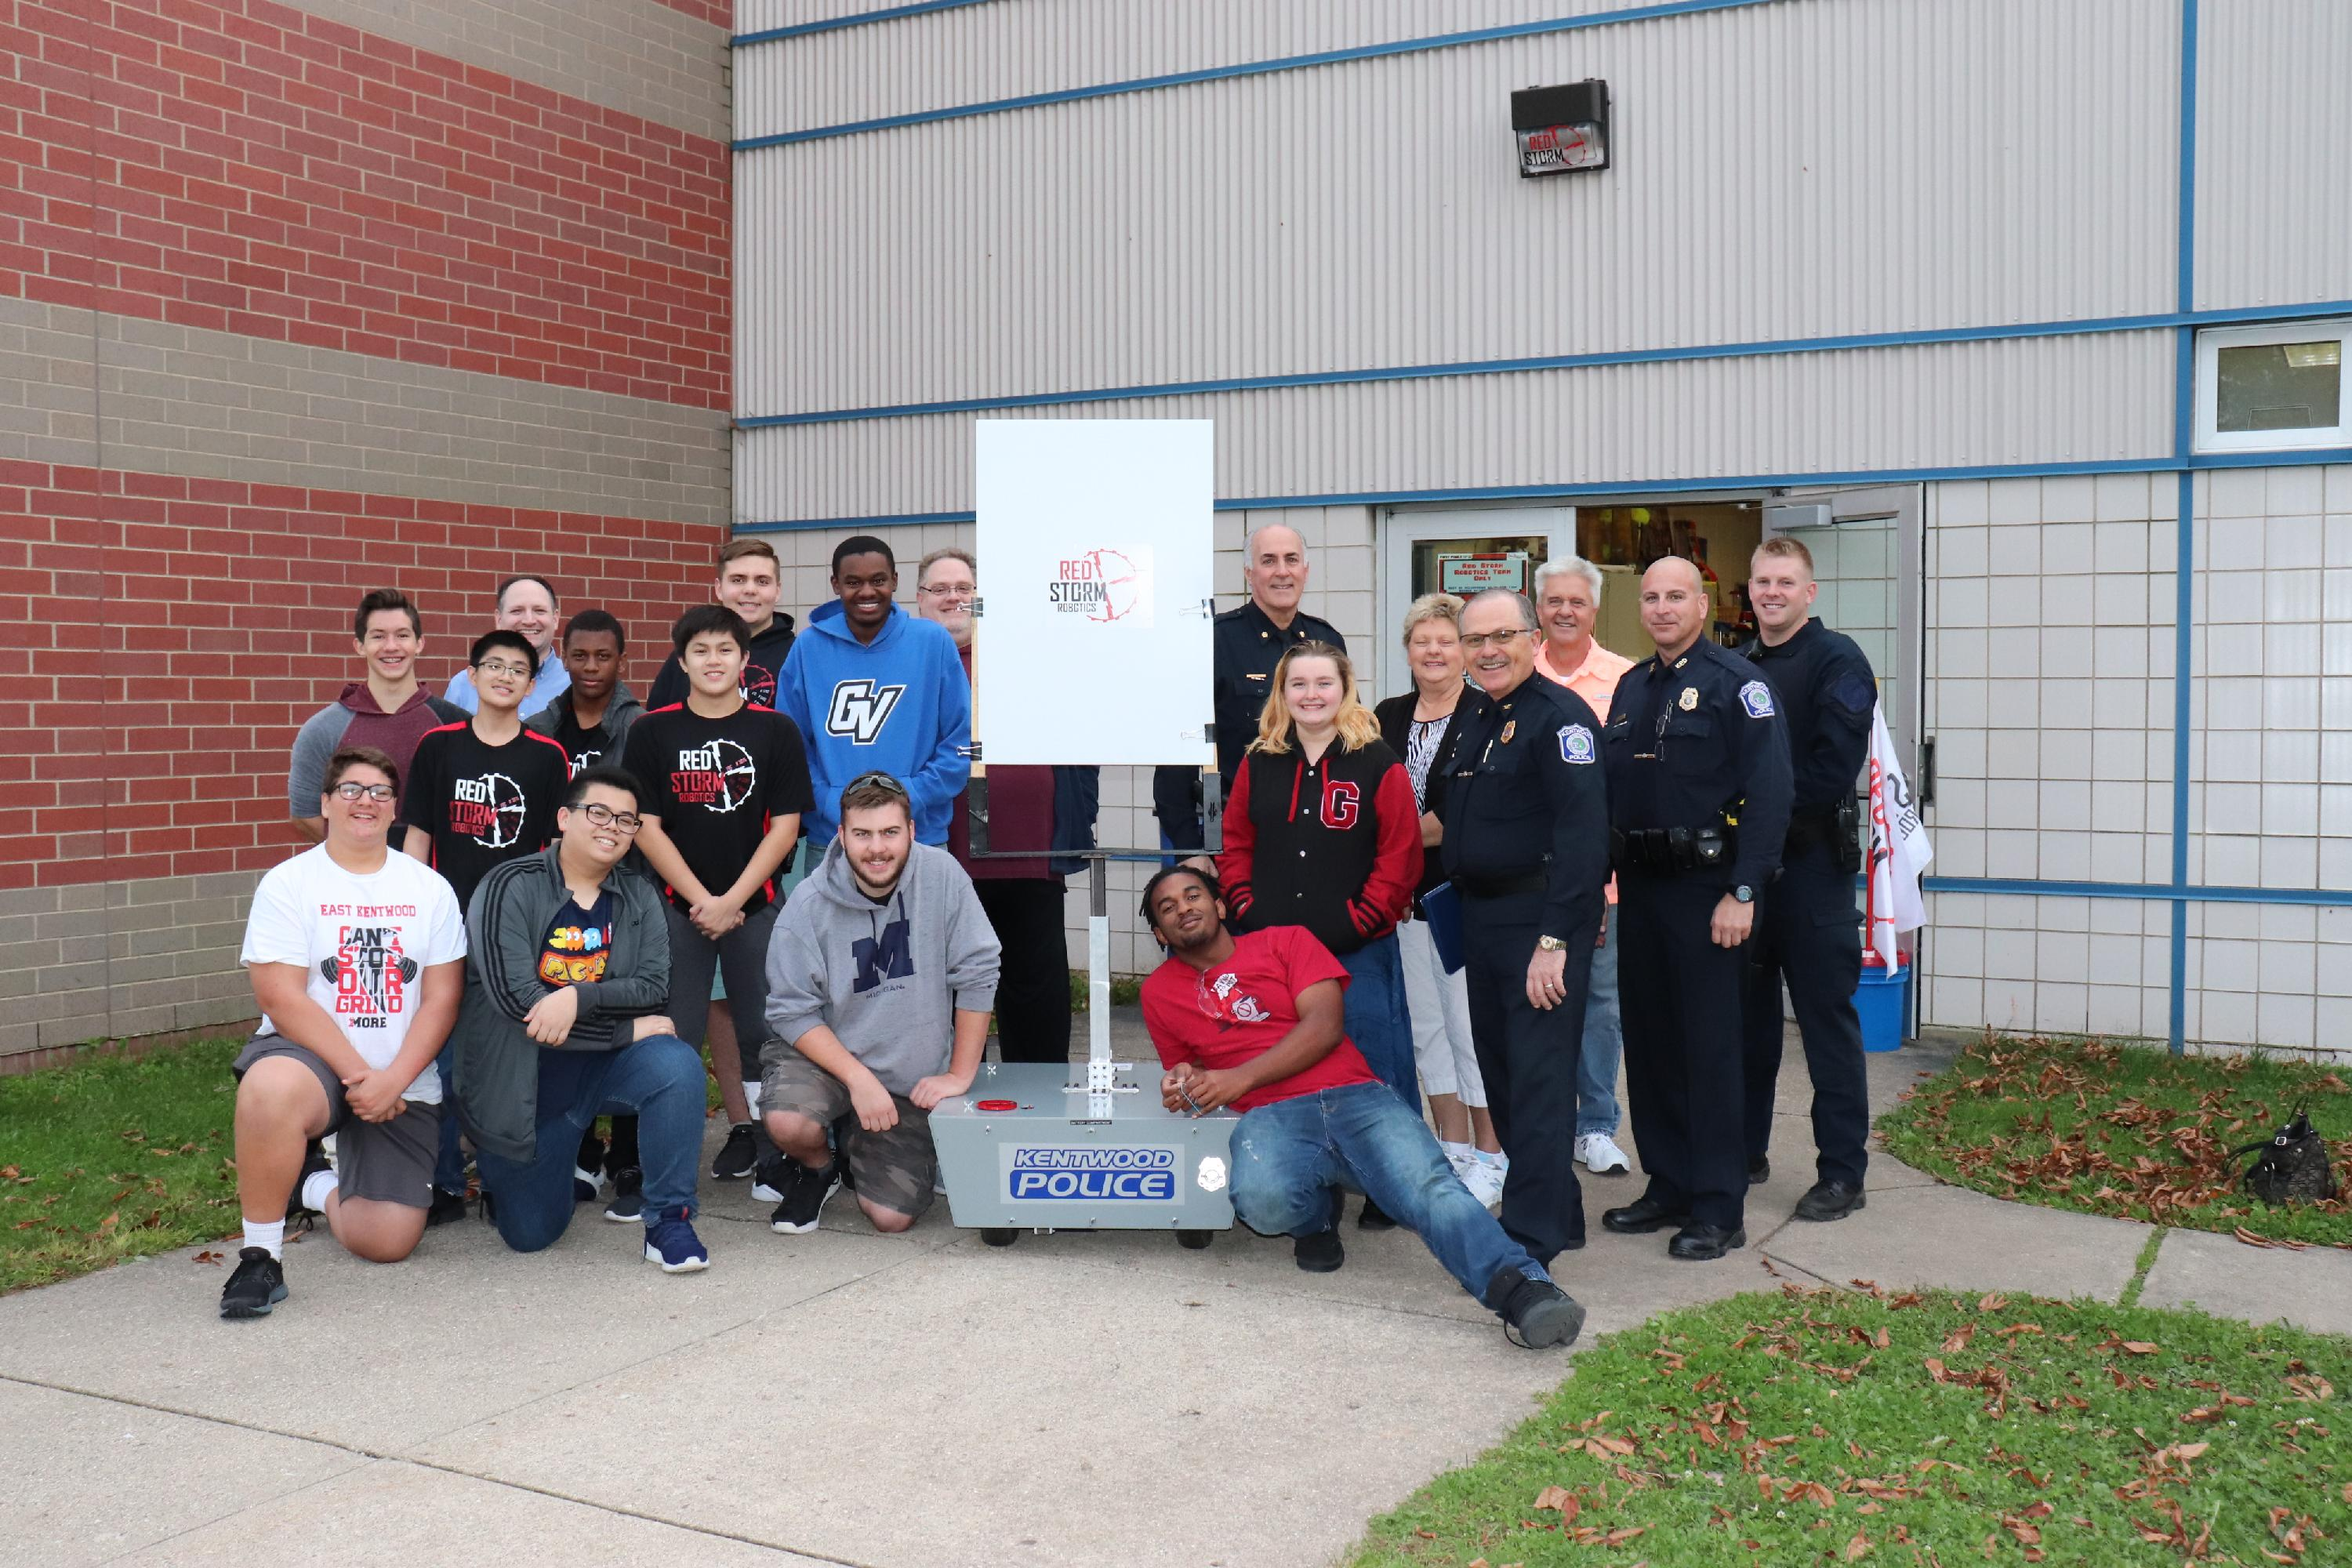 Chief Hillen, Deputy Chief Roberts, Officer Willshire, special response team member Officer Vanderbent, Kentwood Public School students, robotics team mentors and representatives from Target Solutions USA smile for a picture with the Robotic Moving Target System.